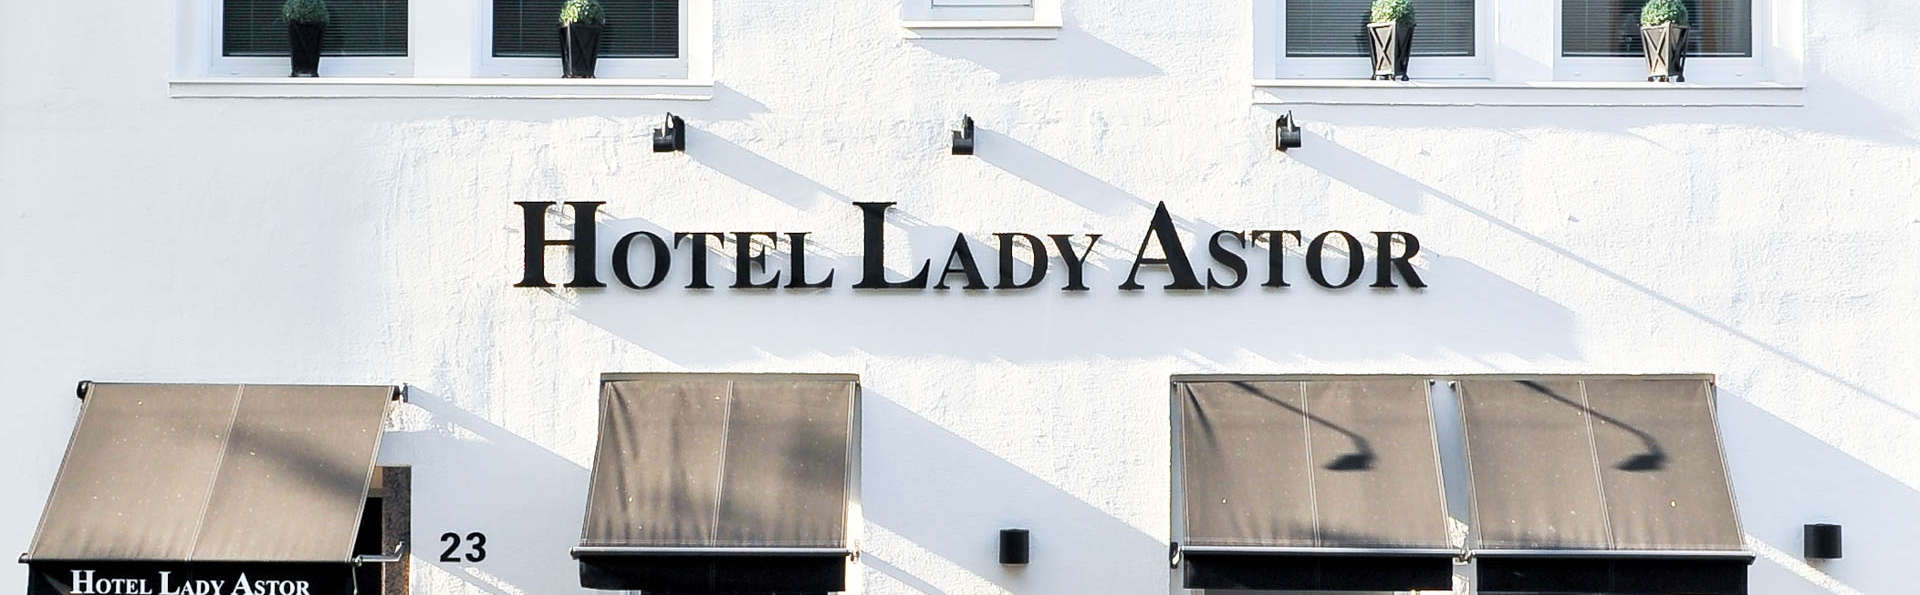 Hotel Sir & Lady Astor - EDIT_NEW_FRONT2.jpg